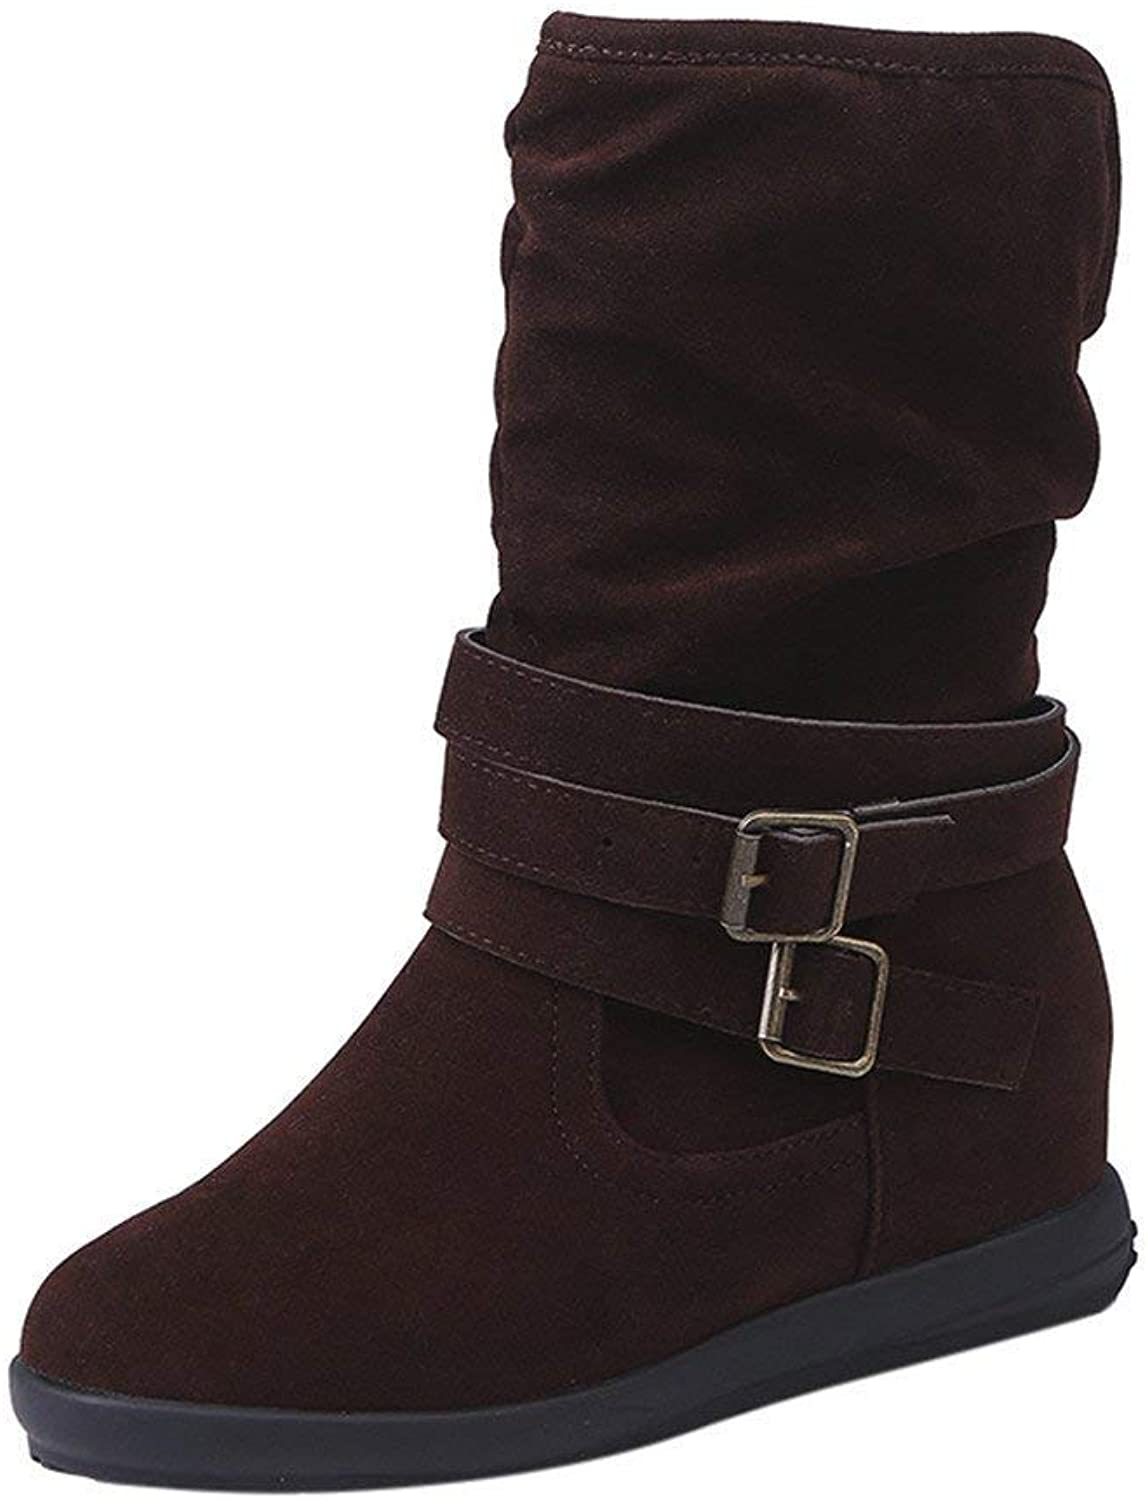 F1rst Rate Snow Boots Women's Winter Warm Booties Low Wedge Buckle Biker Ankle Trim Flat Ankle Boots shoes